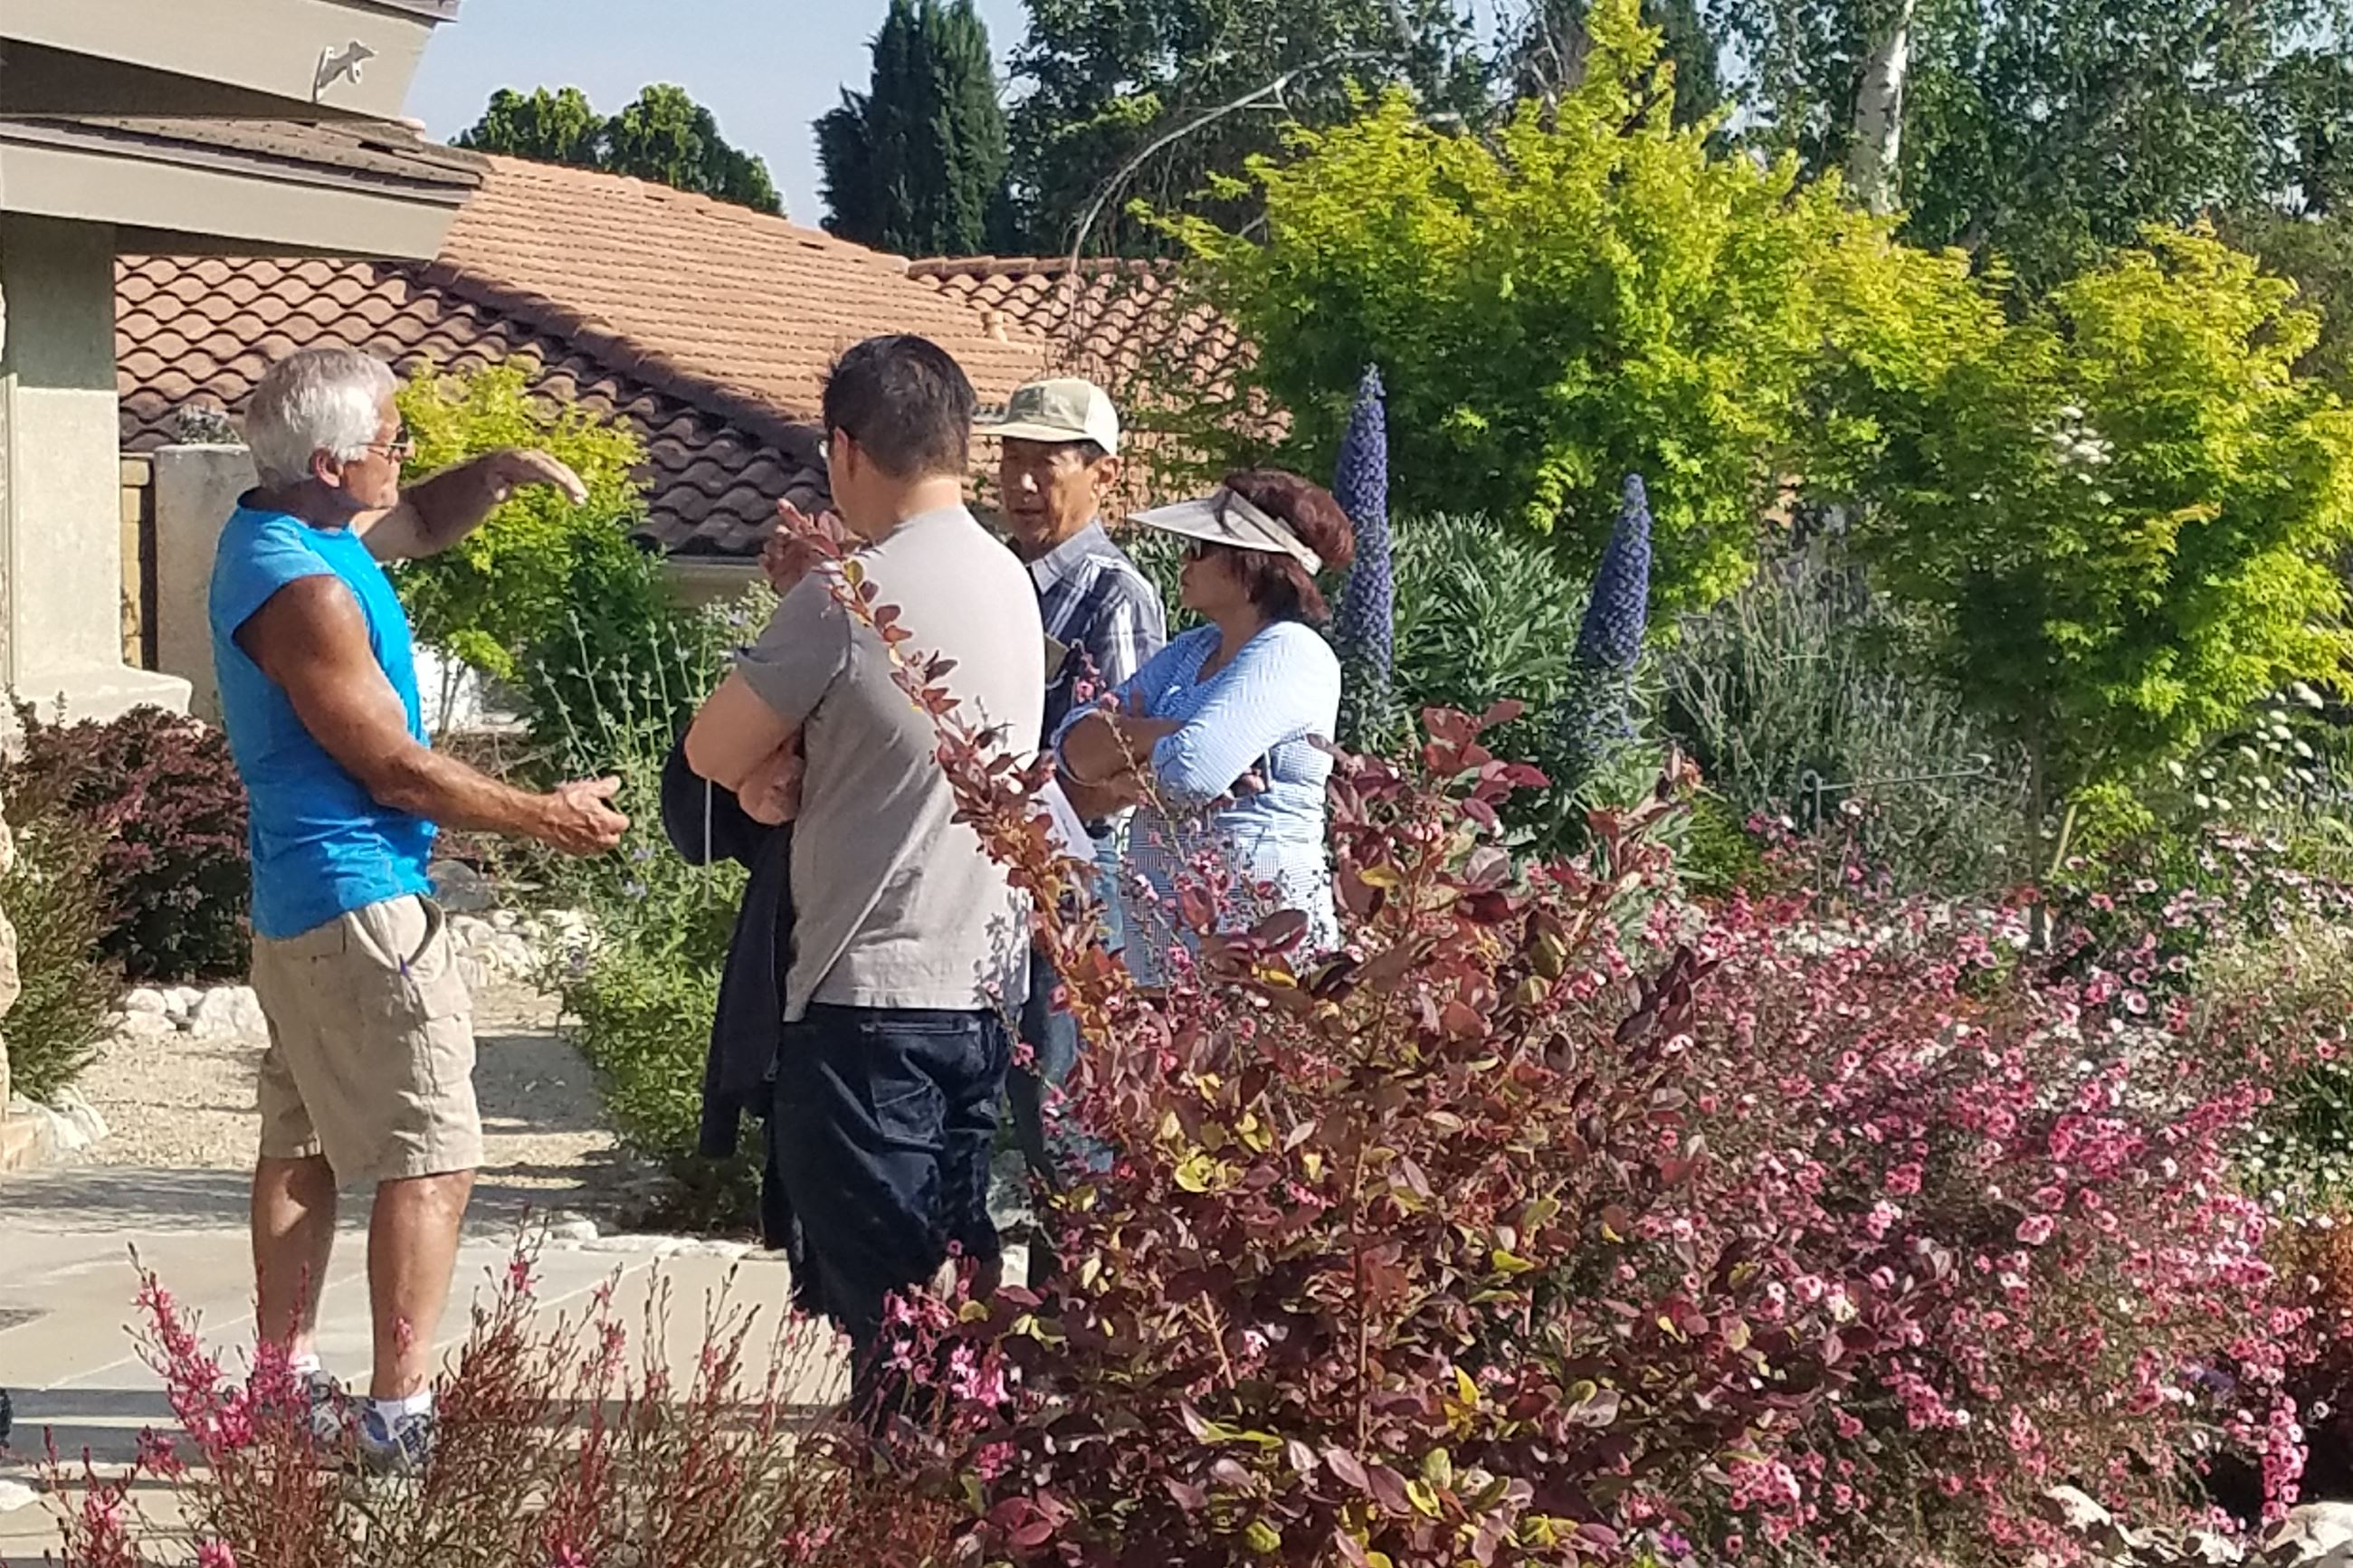 Sam Dominick Shares Water Savvy Expertise with Garden Tour Attendees